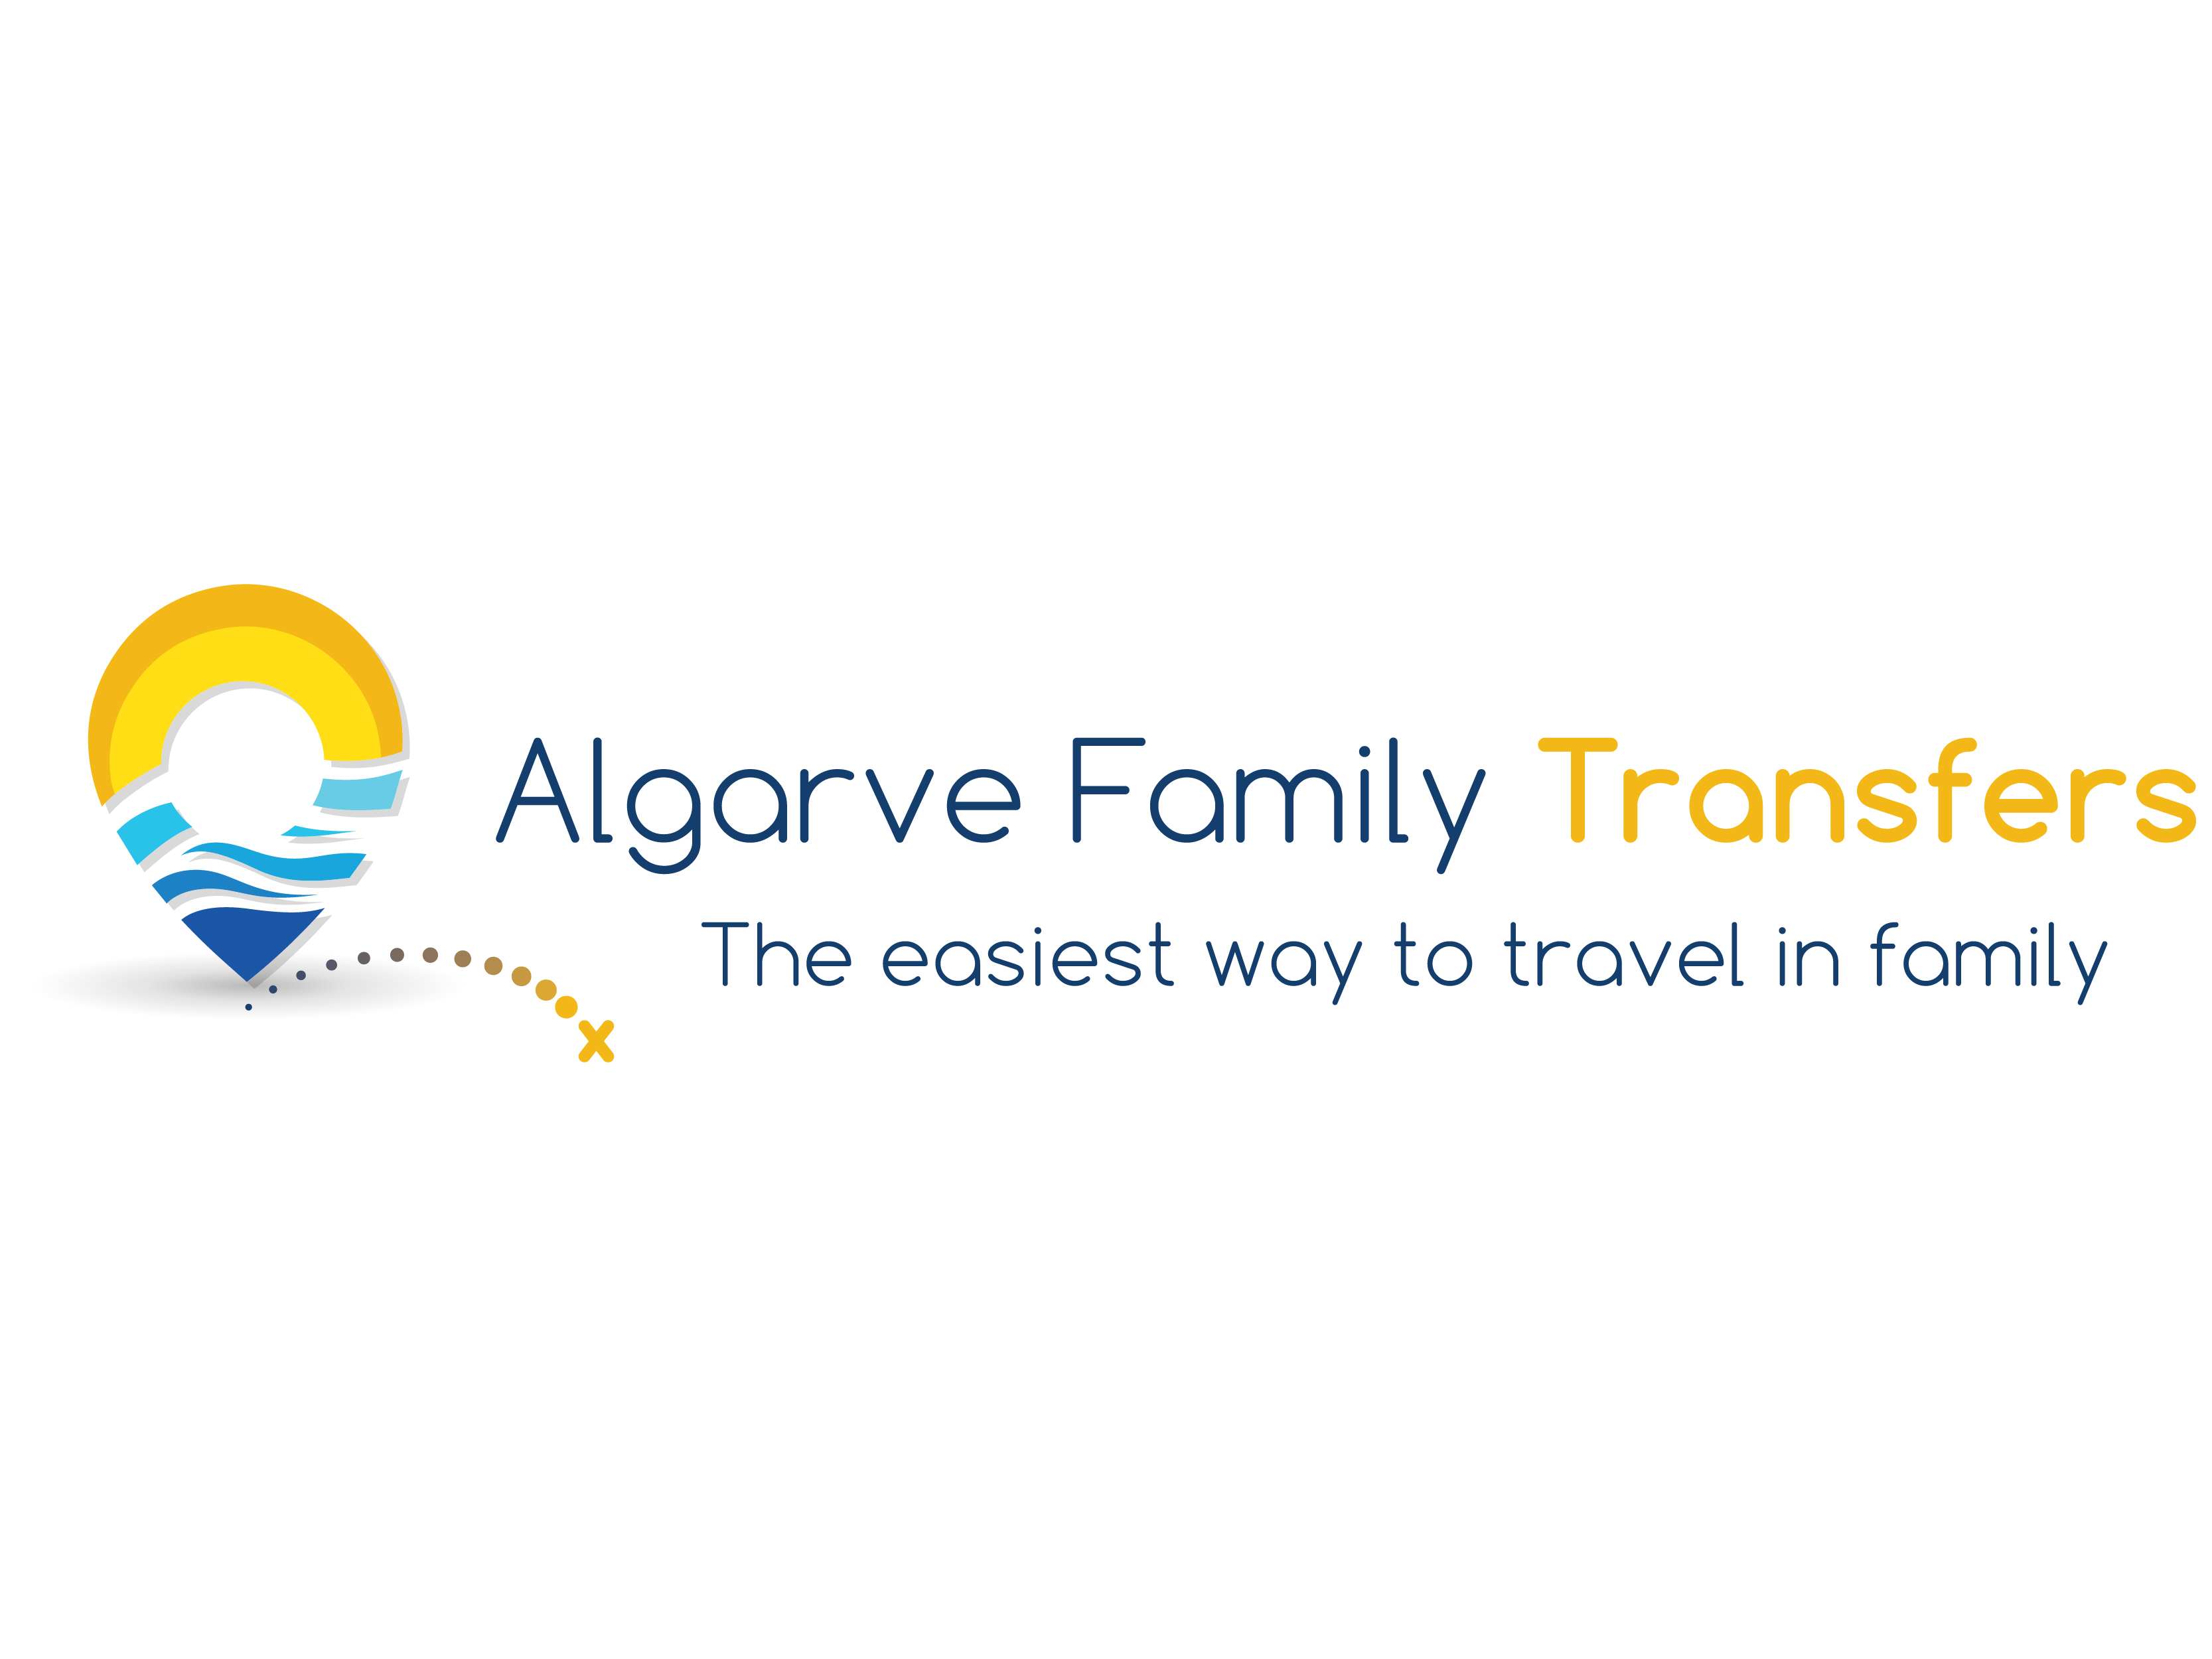 Algarve Family Transfers main photo.